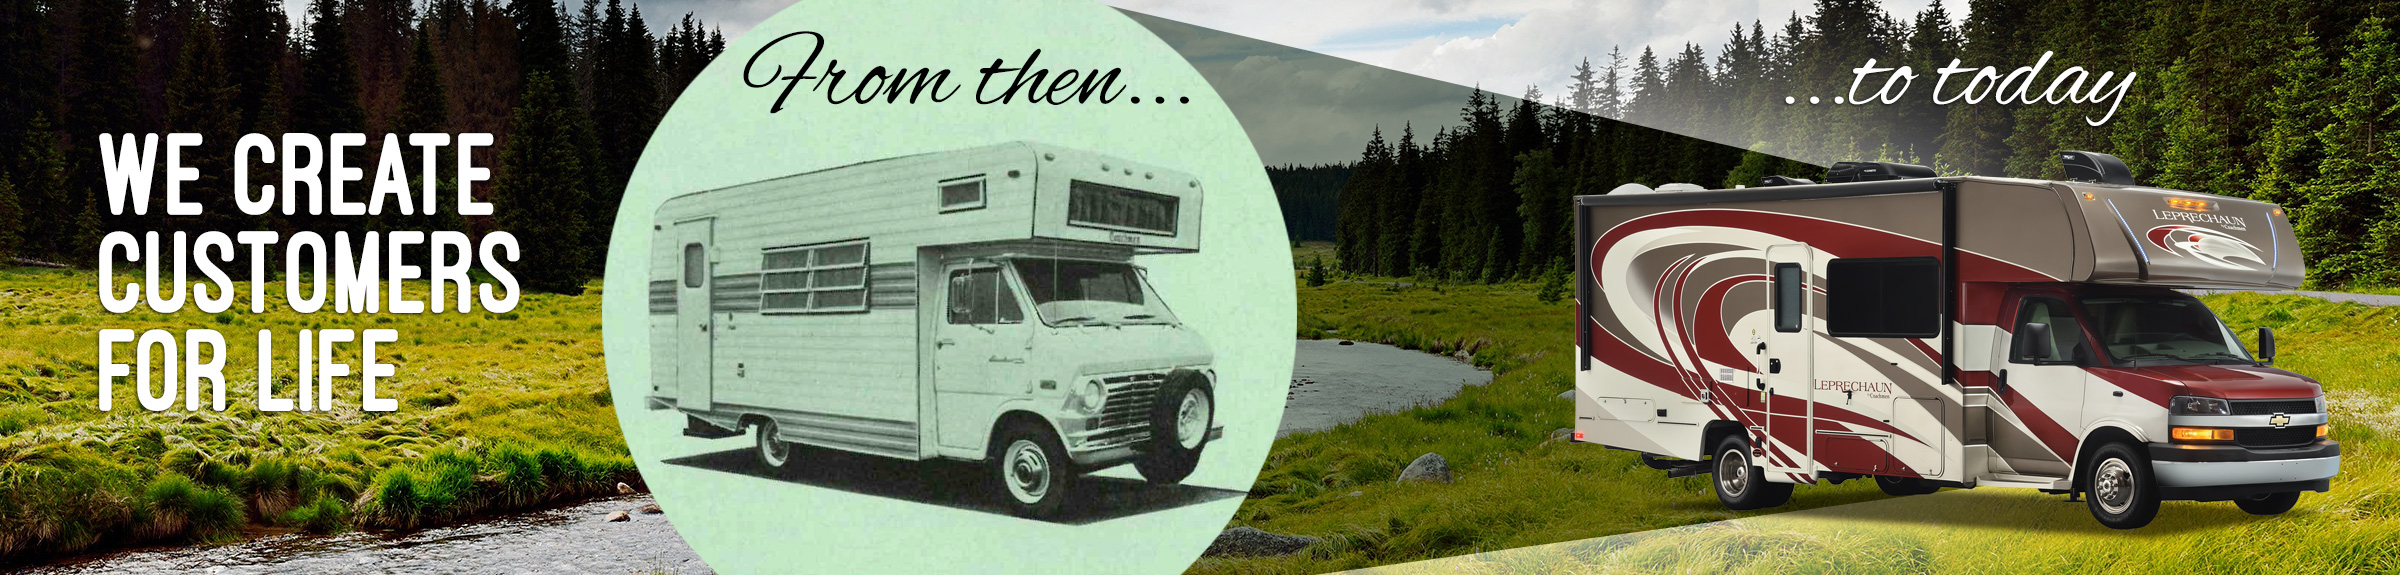 Our Story Coachmen RV | Travel Trailers, Fifth Wheels